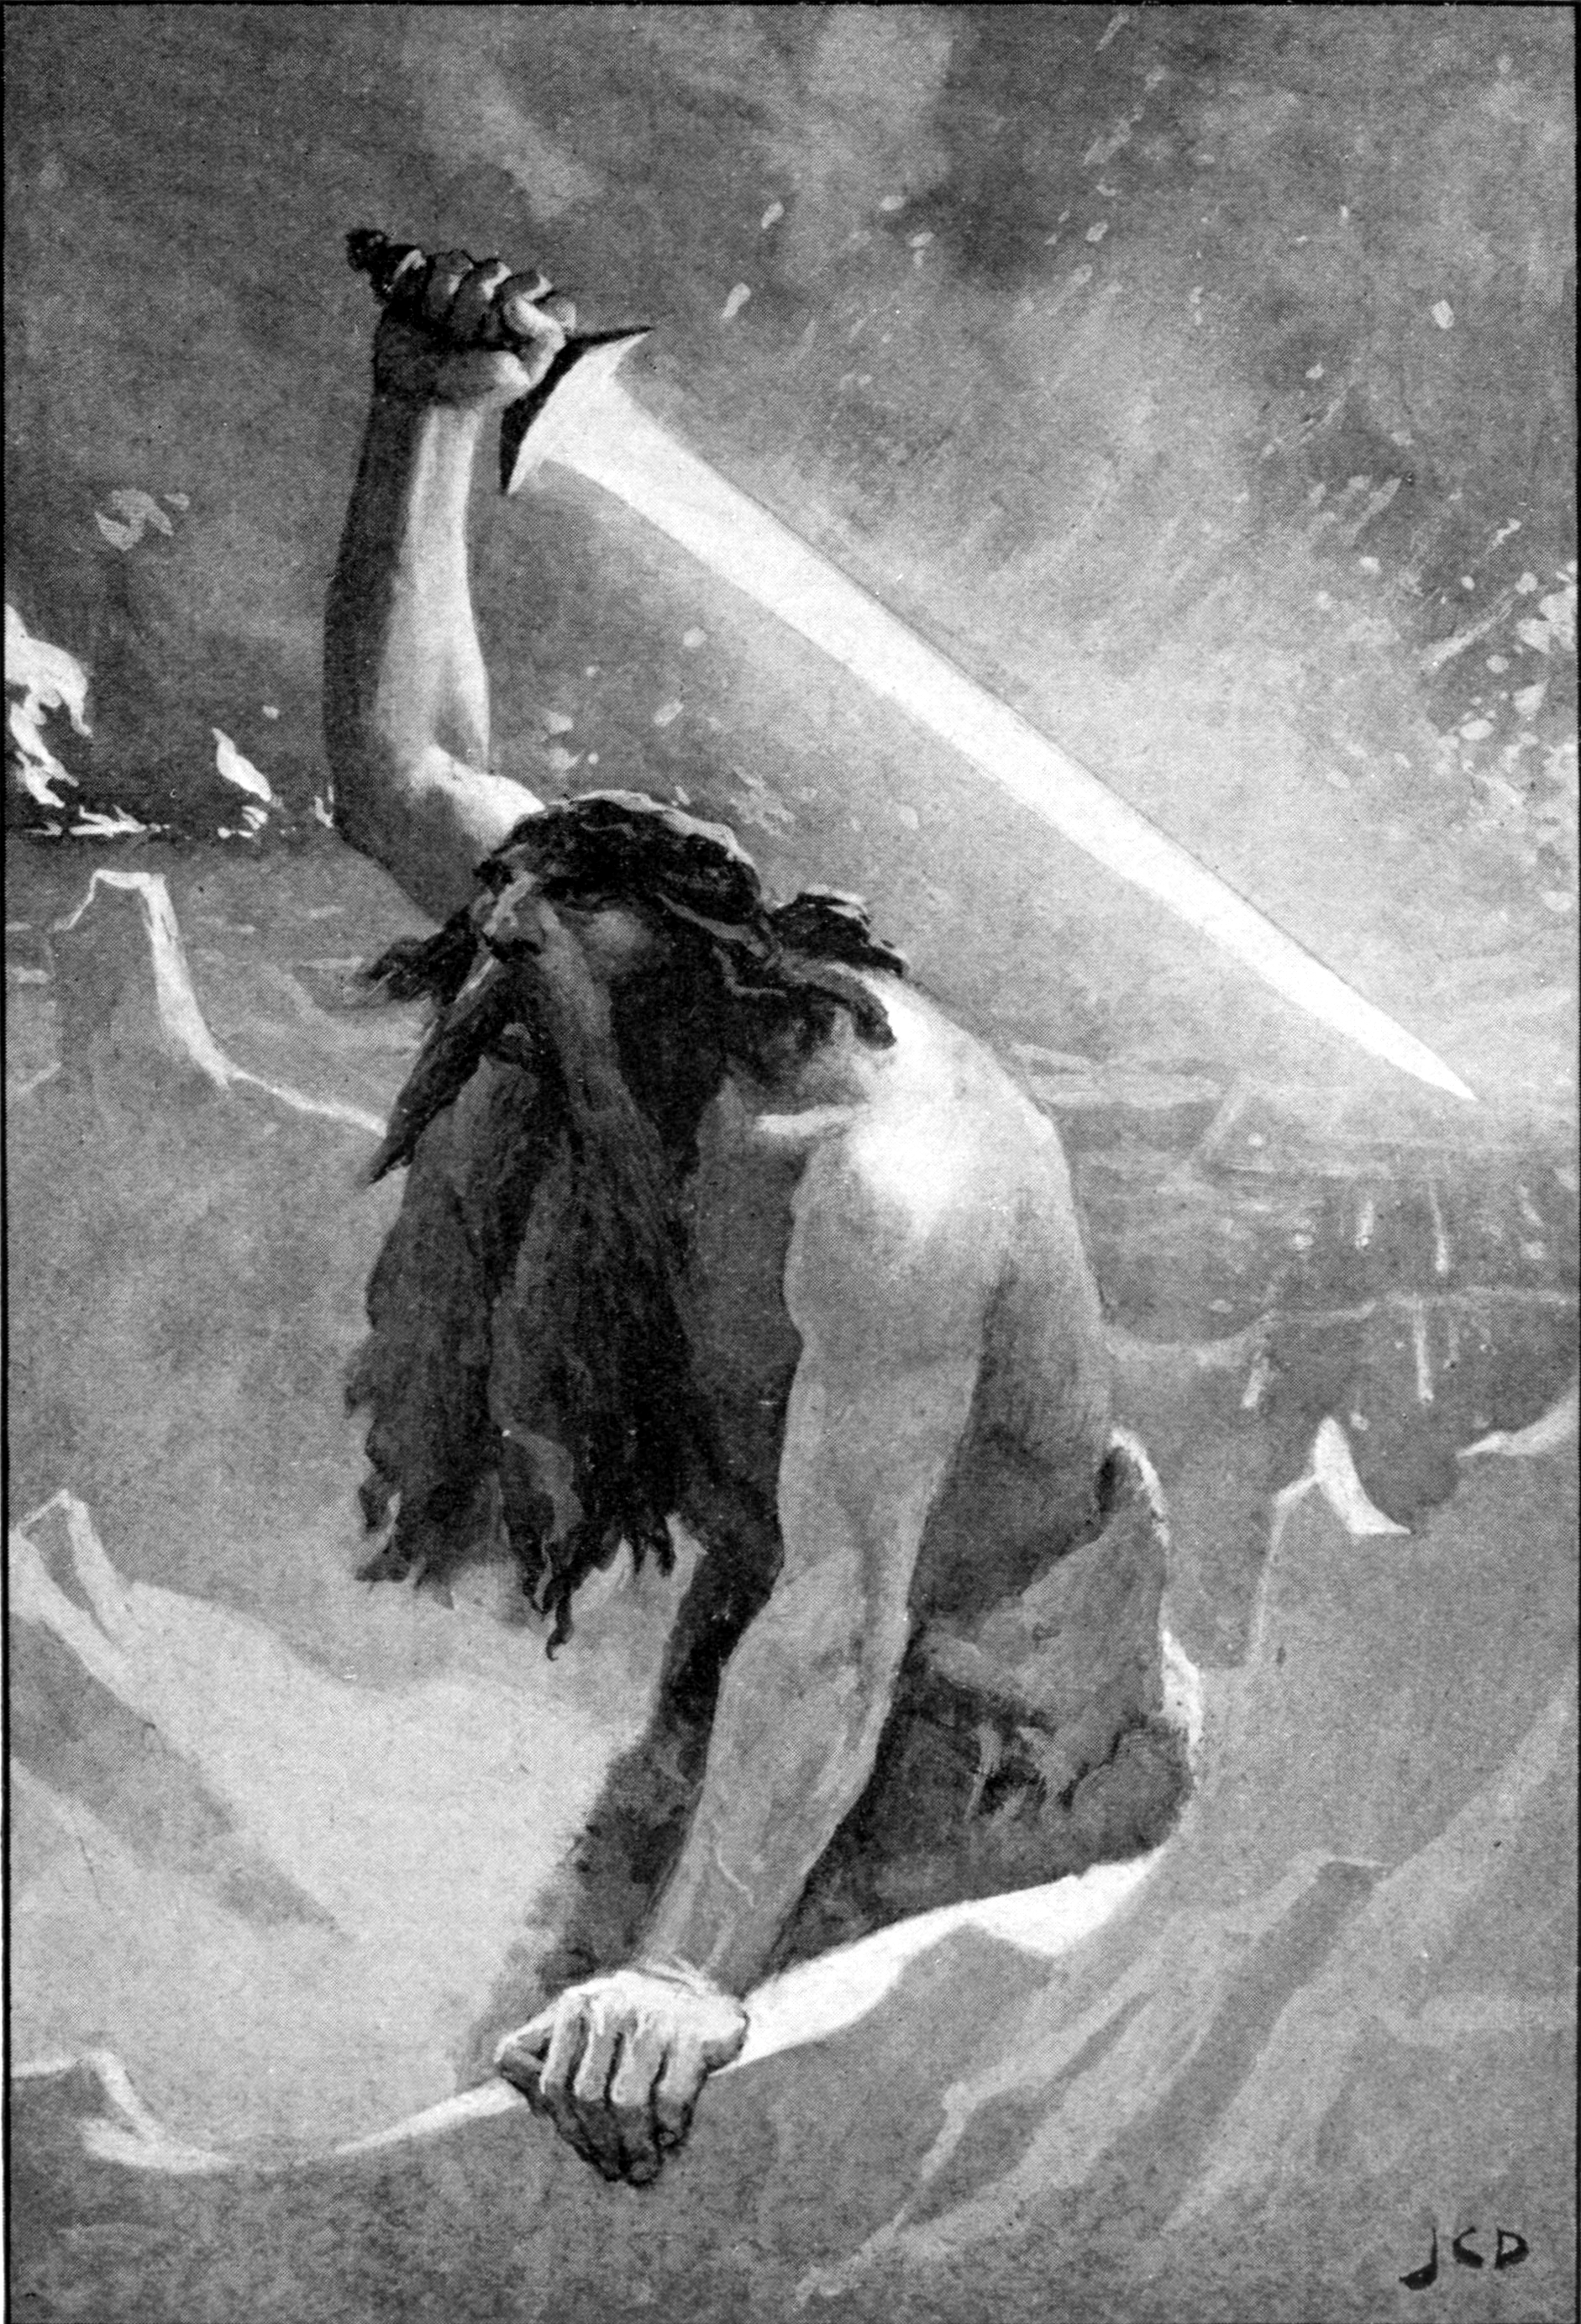 Giant norse mythology - photo#10